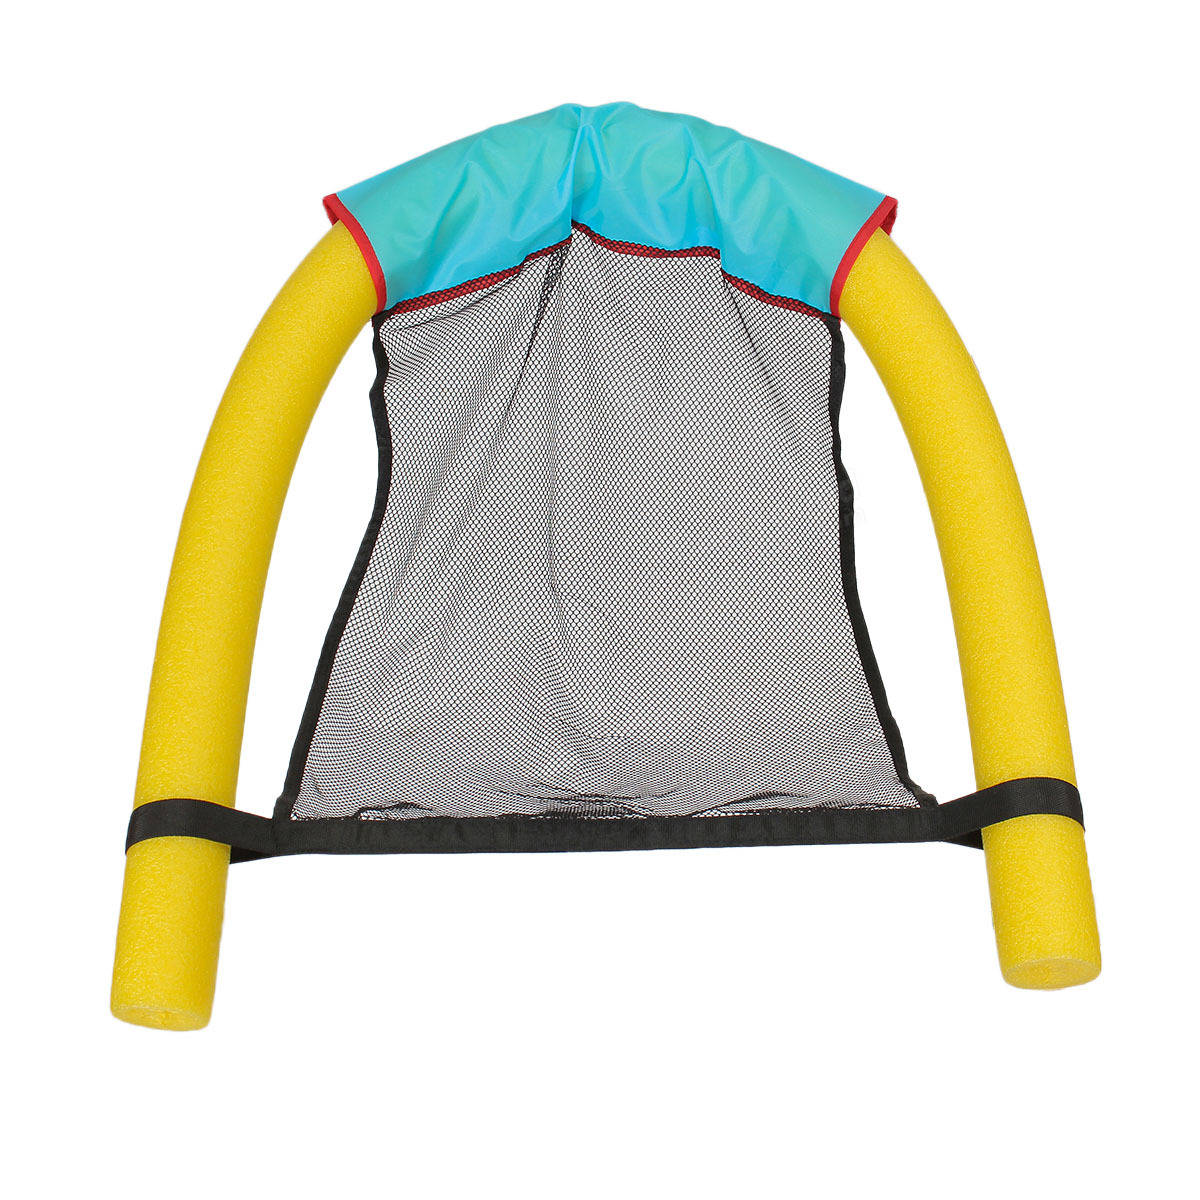 Floating Chair Swimming Pool Water Floating Chair Seat Bed Buoyancy Float